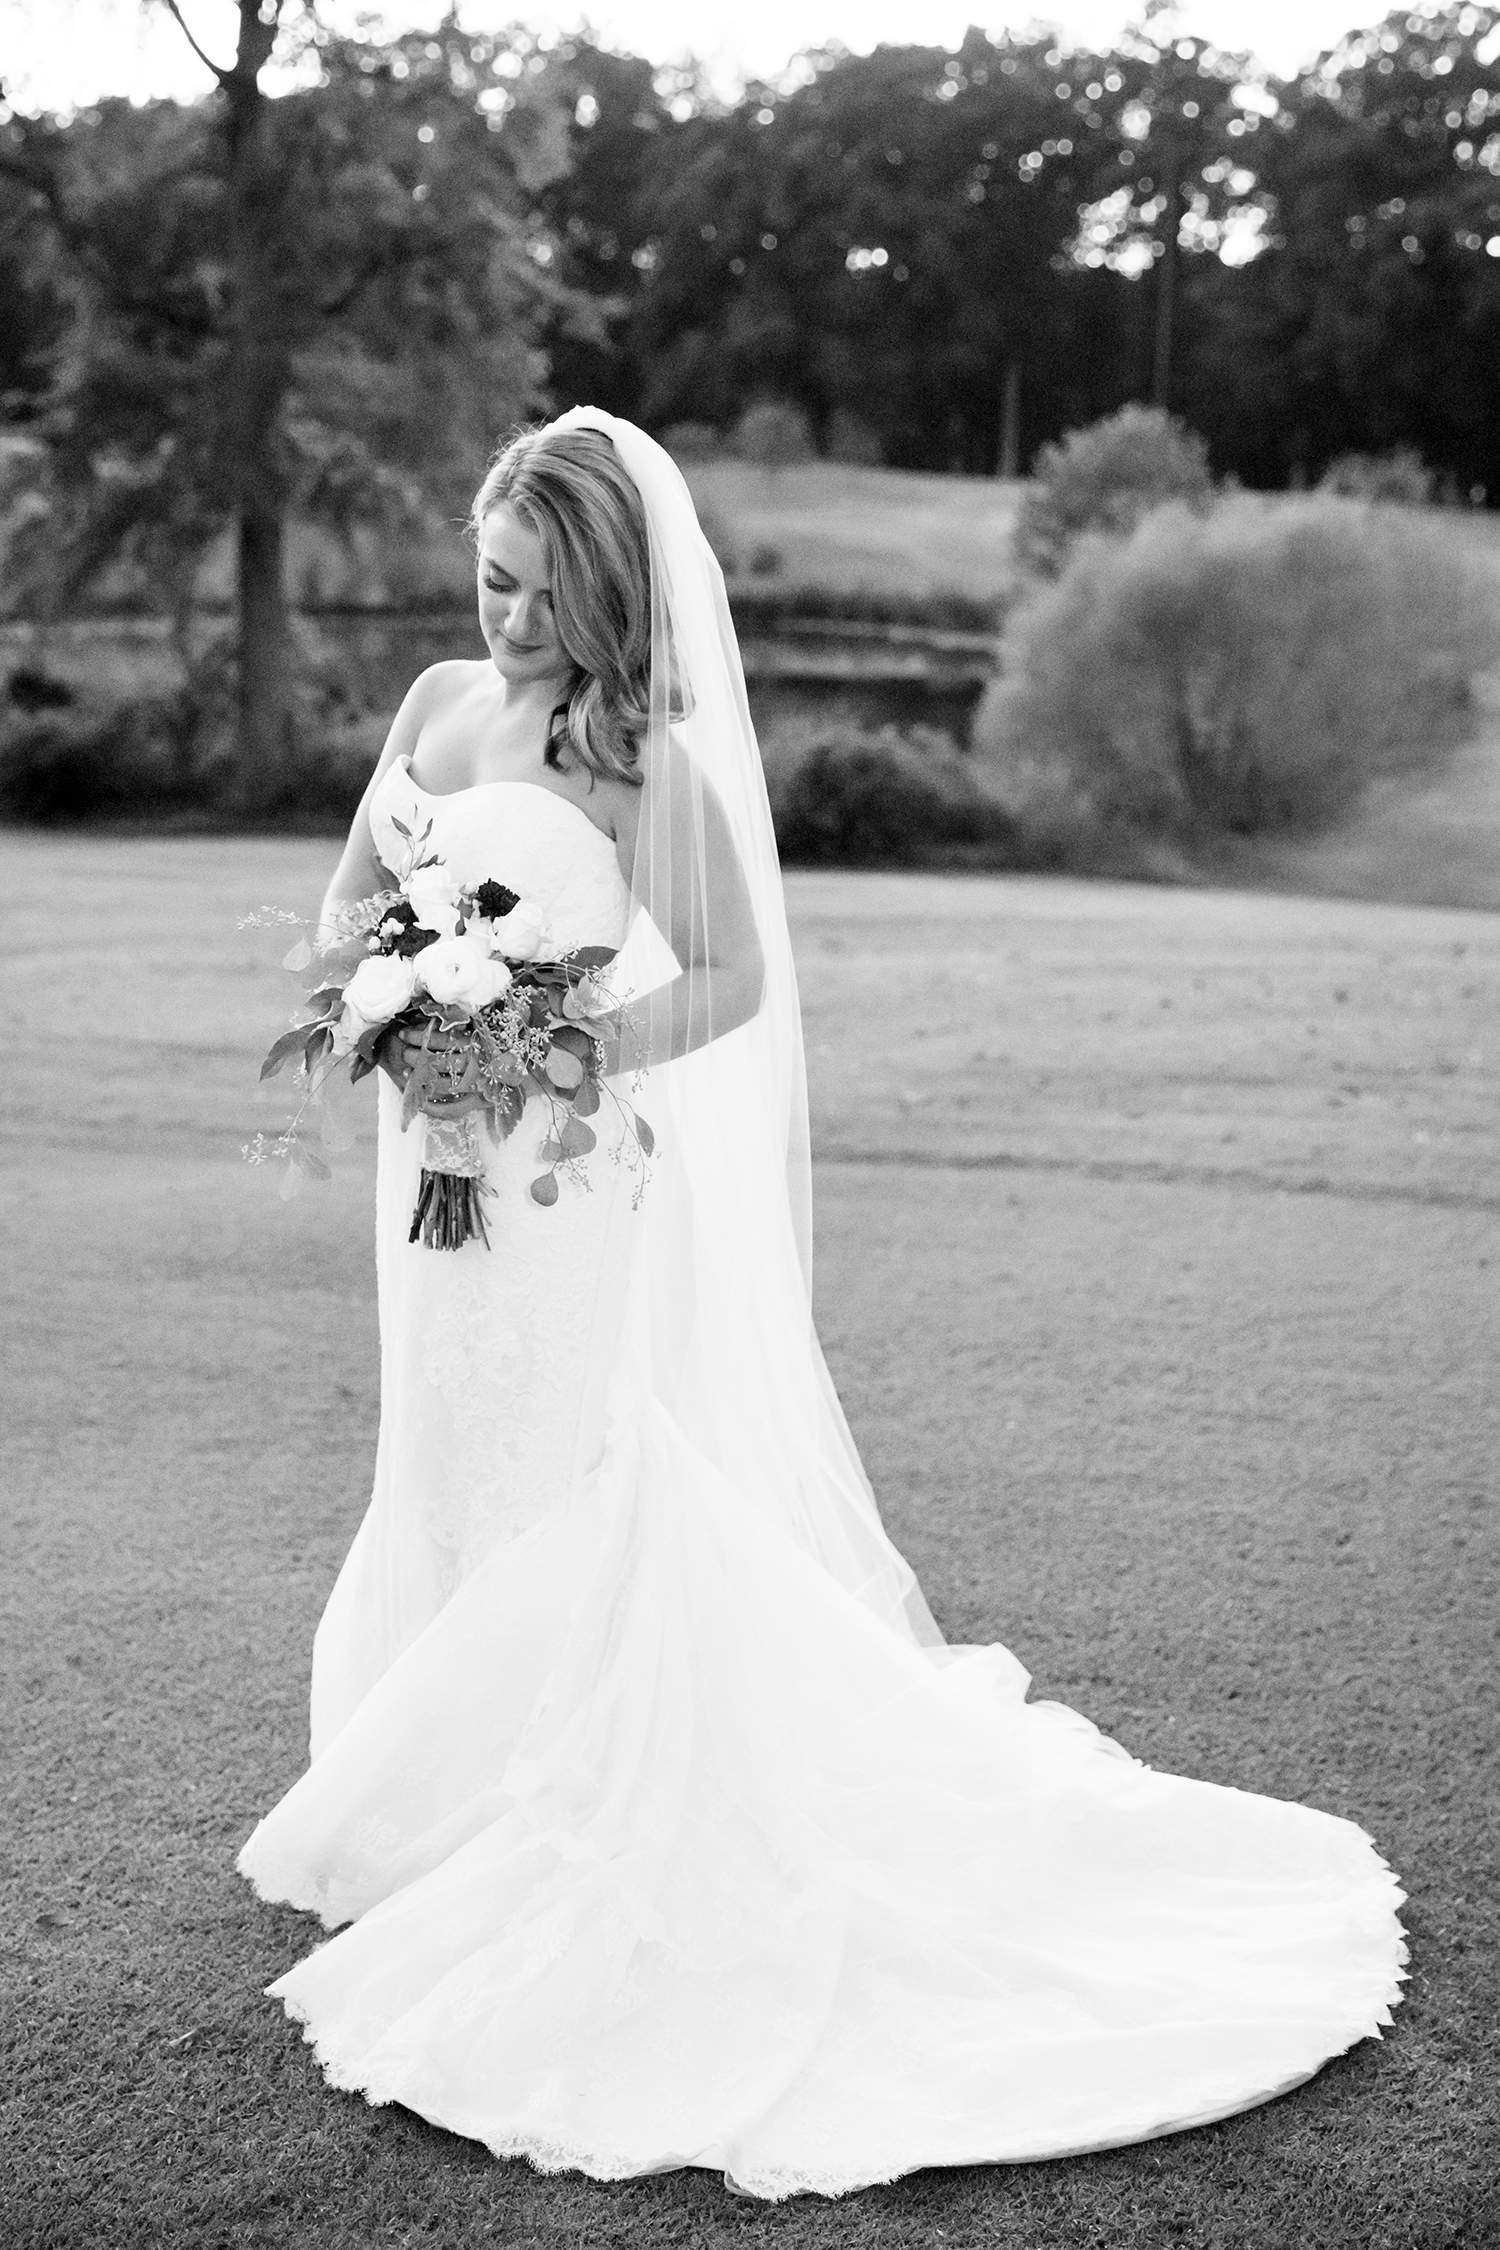 Where to buy your wedding dress jd photo llc richmond virginia located in the heart of downtown richmond this boutique offers an exclusive selection of couture designer wedding gowns their appointment only philosophy ombrellifo Images